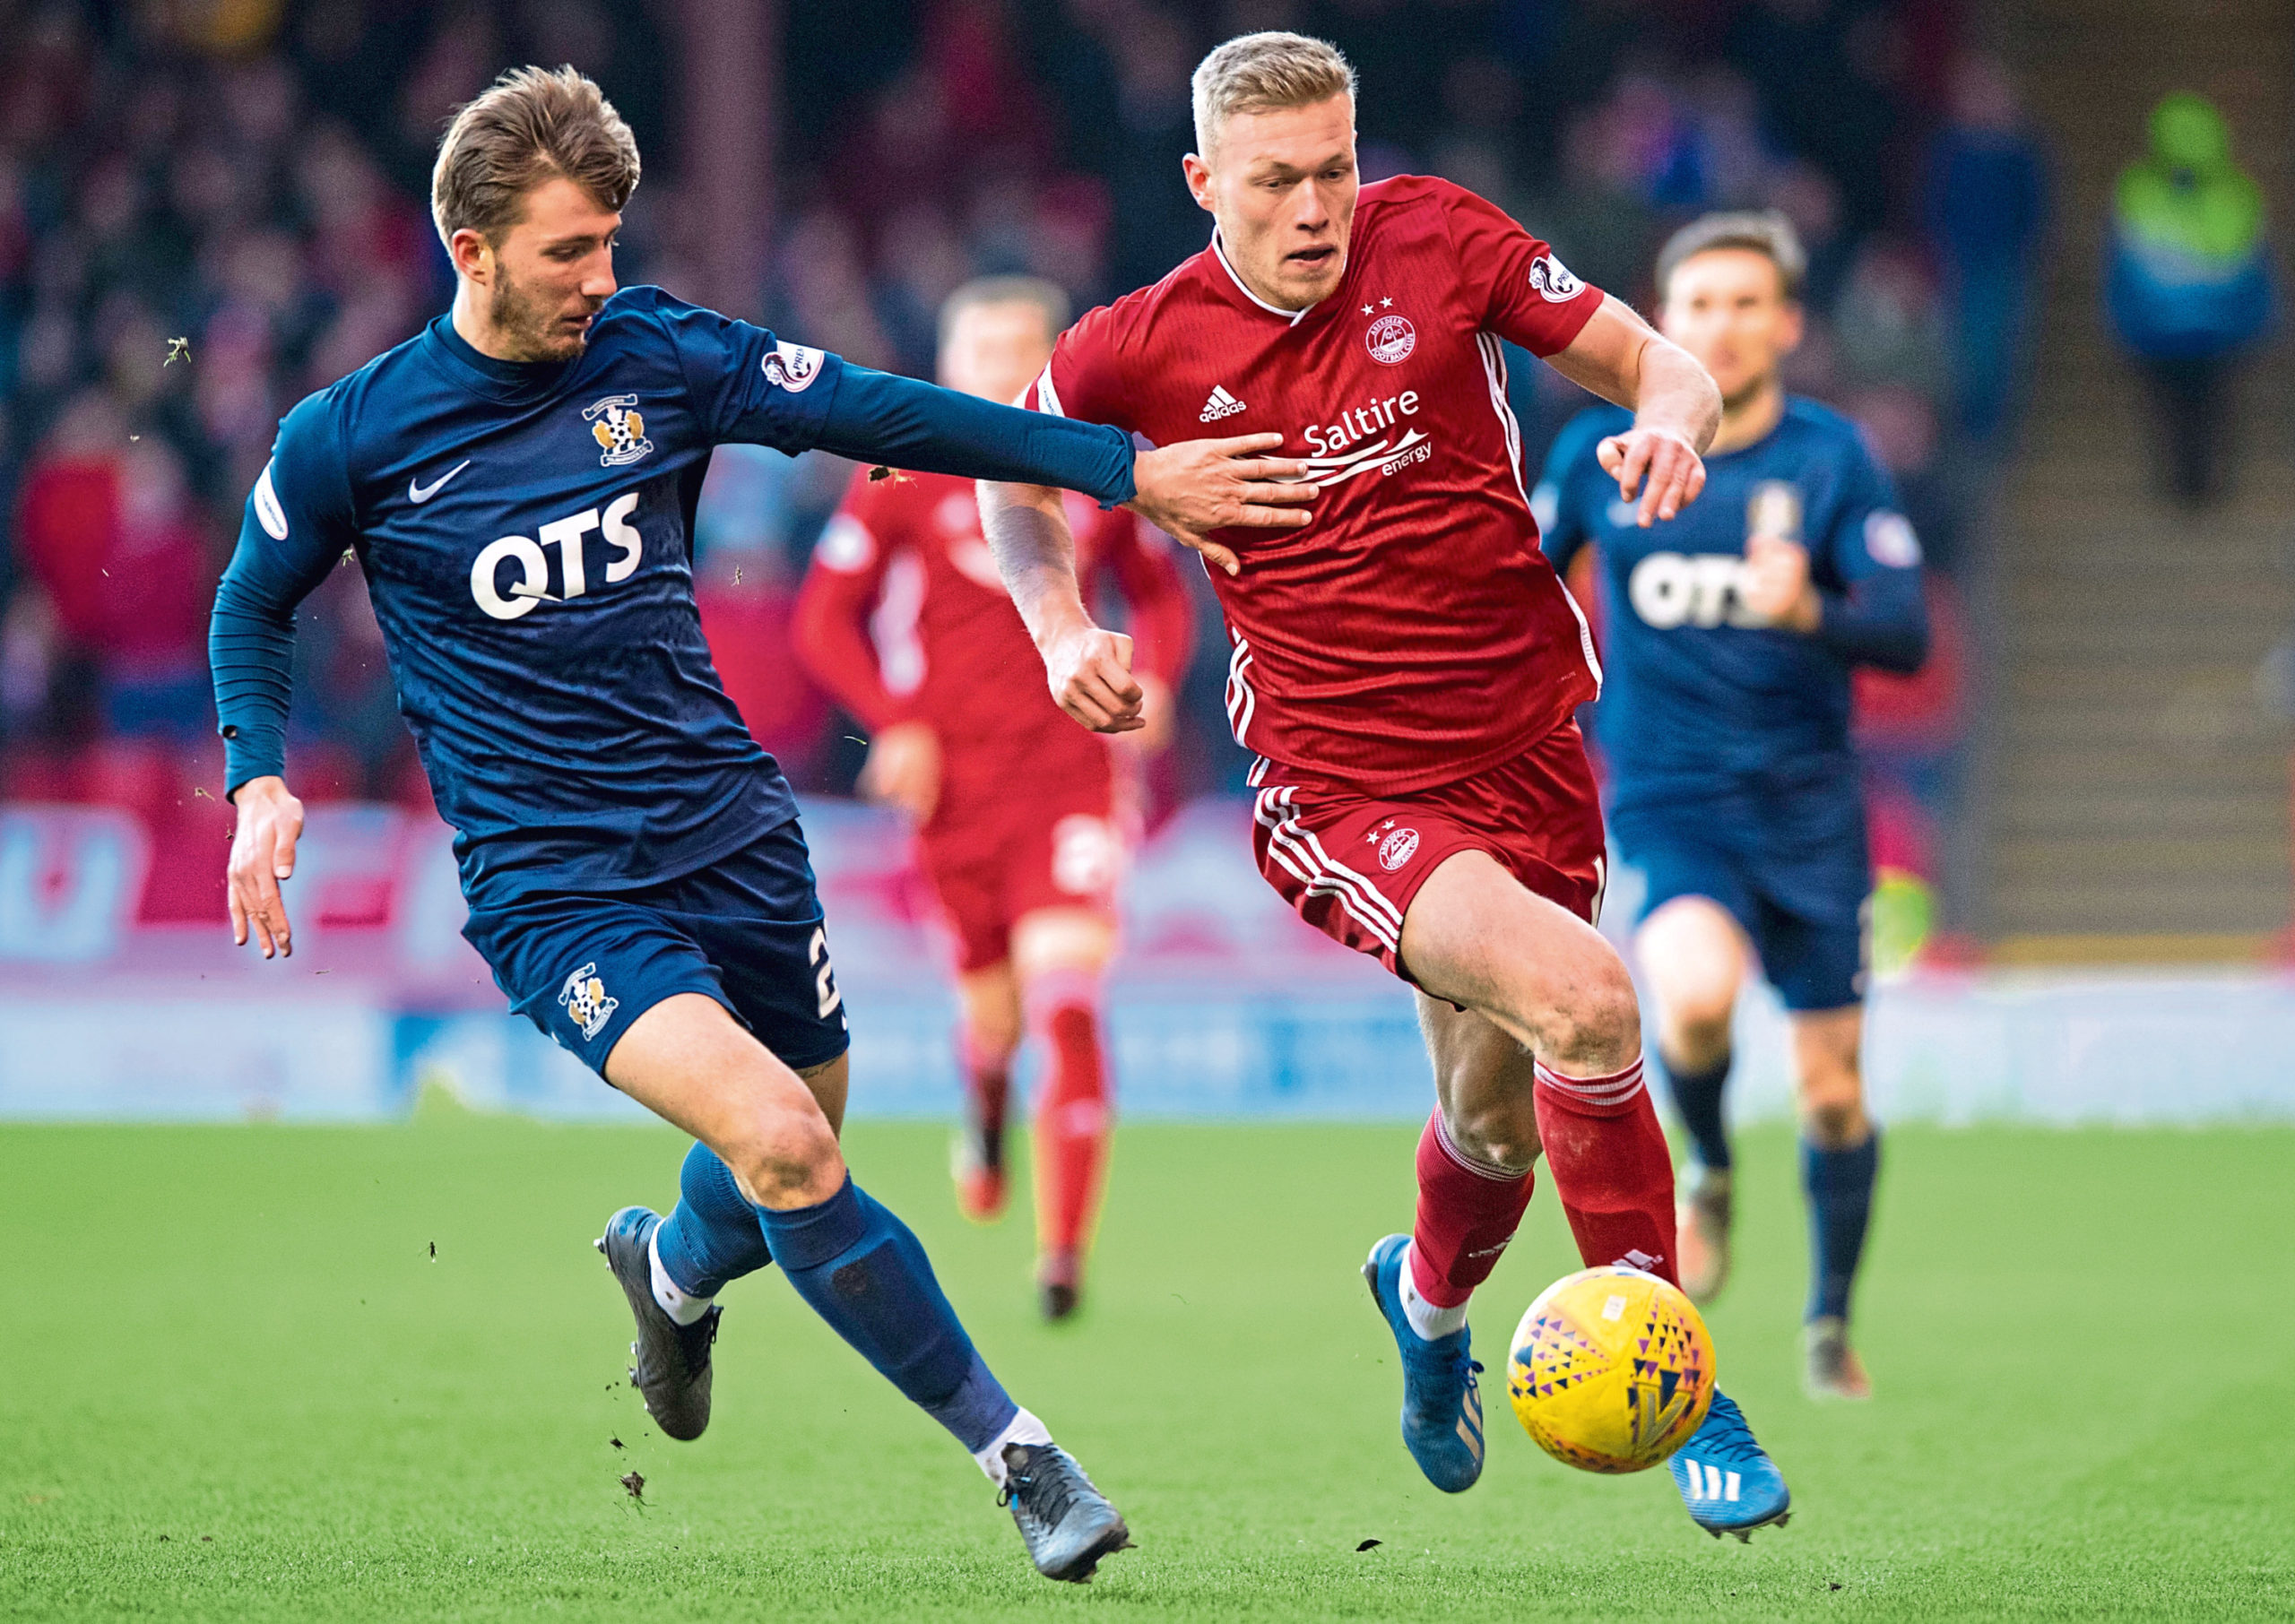 Sam Cosgrove in action during the Scottish Cup fifth round tie between Aberdeen and Kilmarnock at Pittodrie Stadium on February 8.